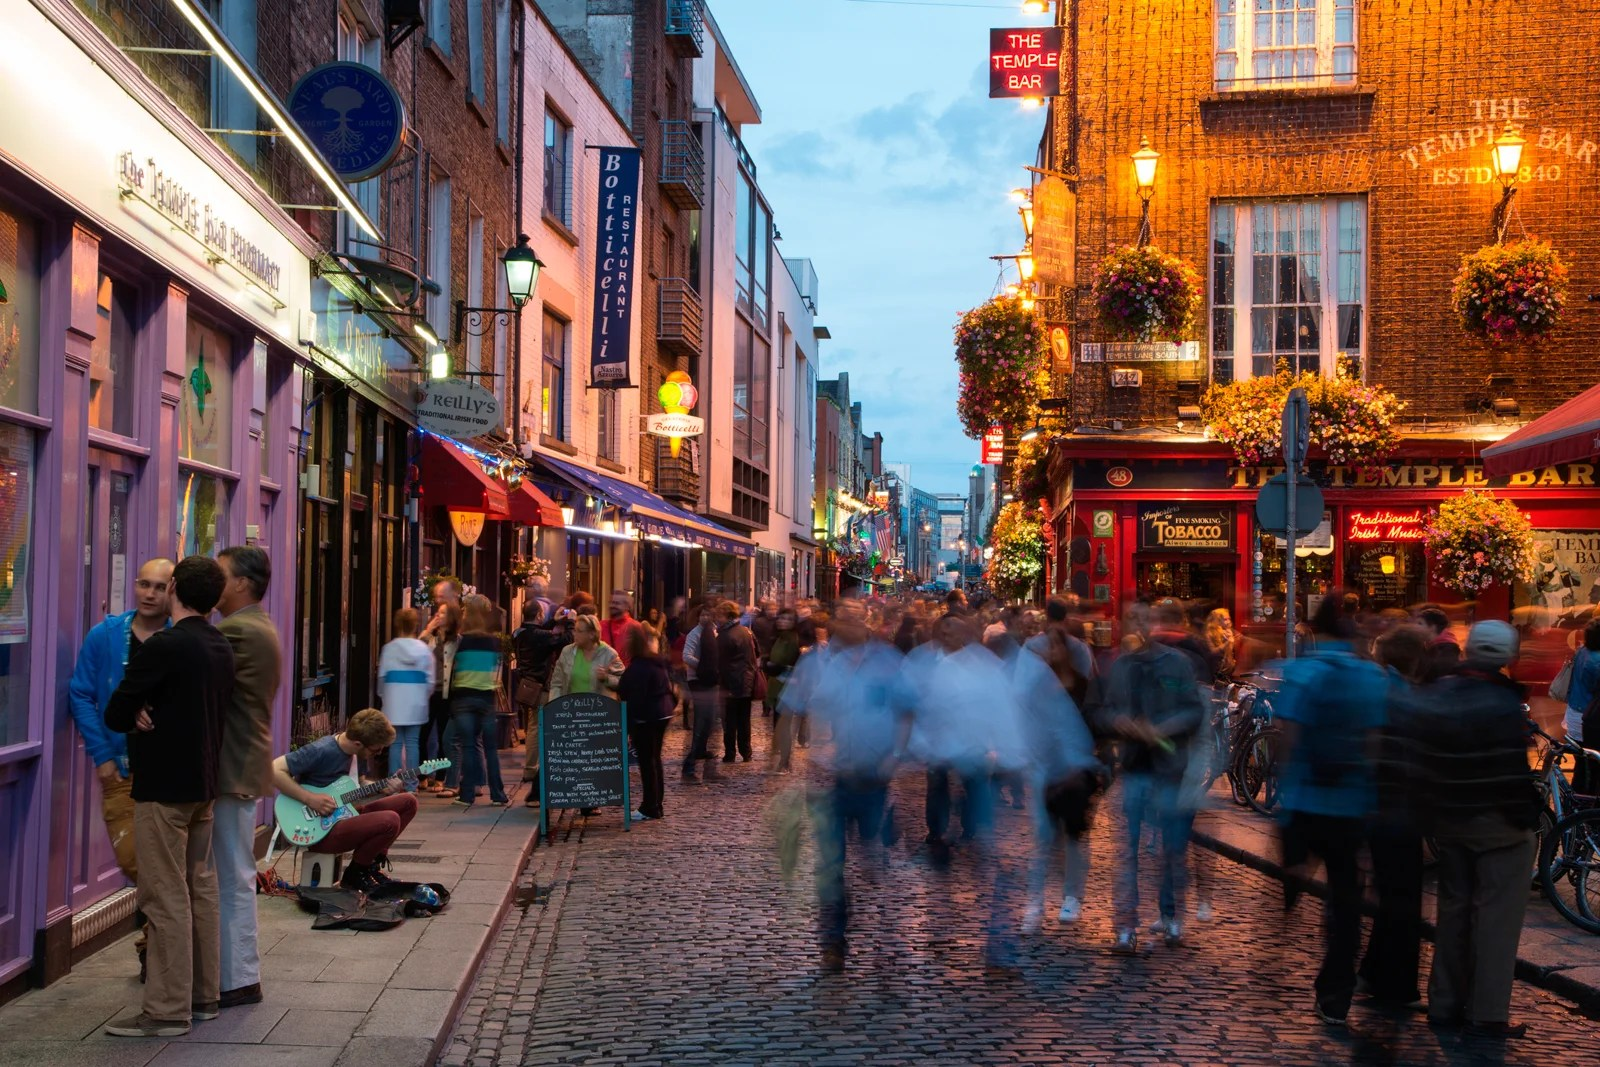 Second Cities: Destinations to add onto a trip to Dublin